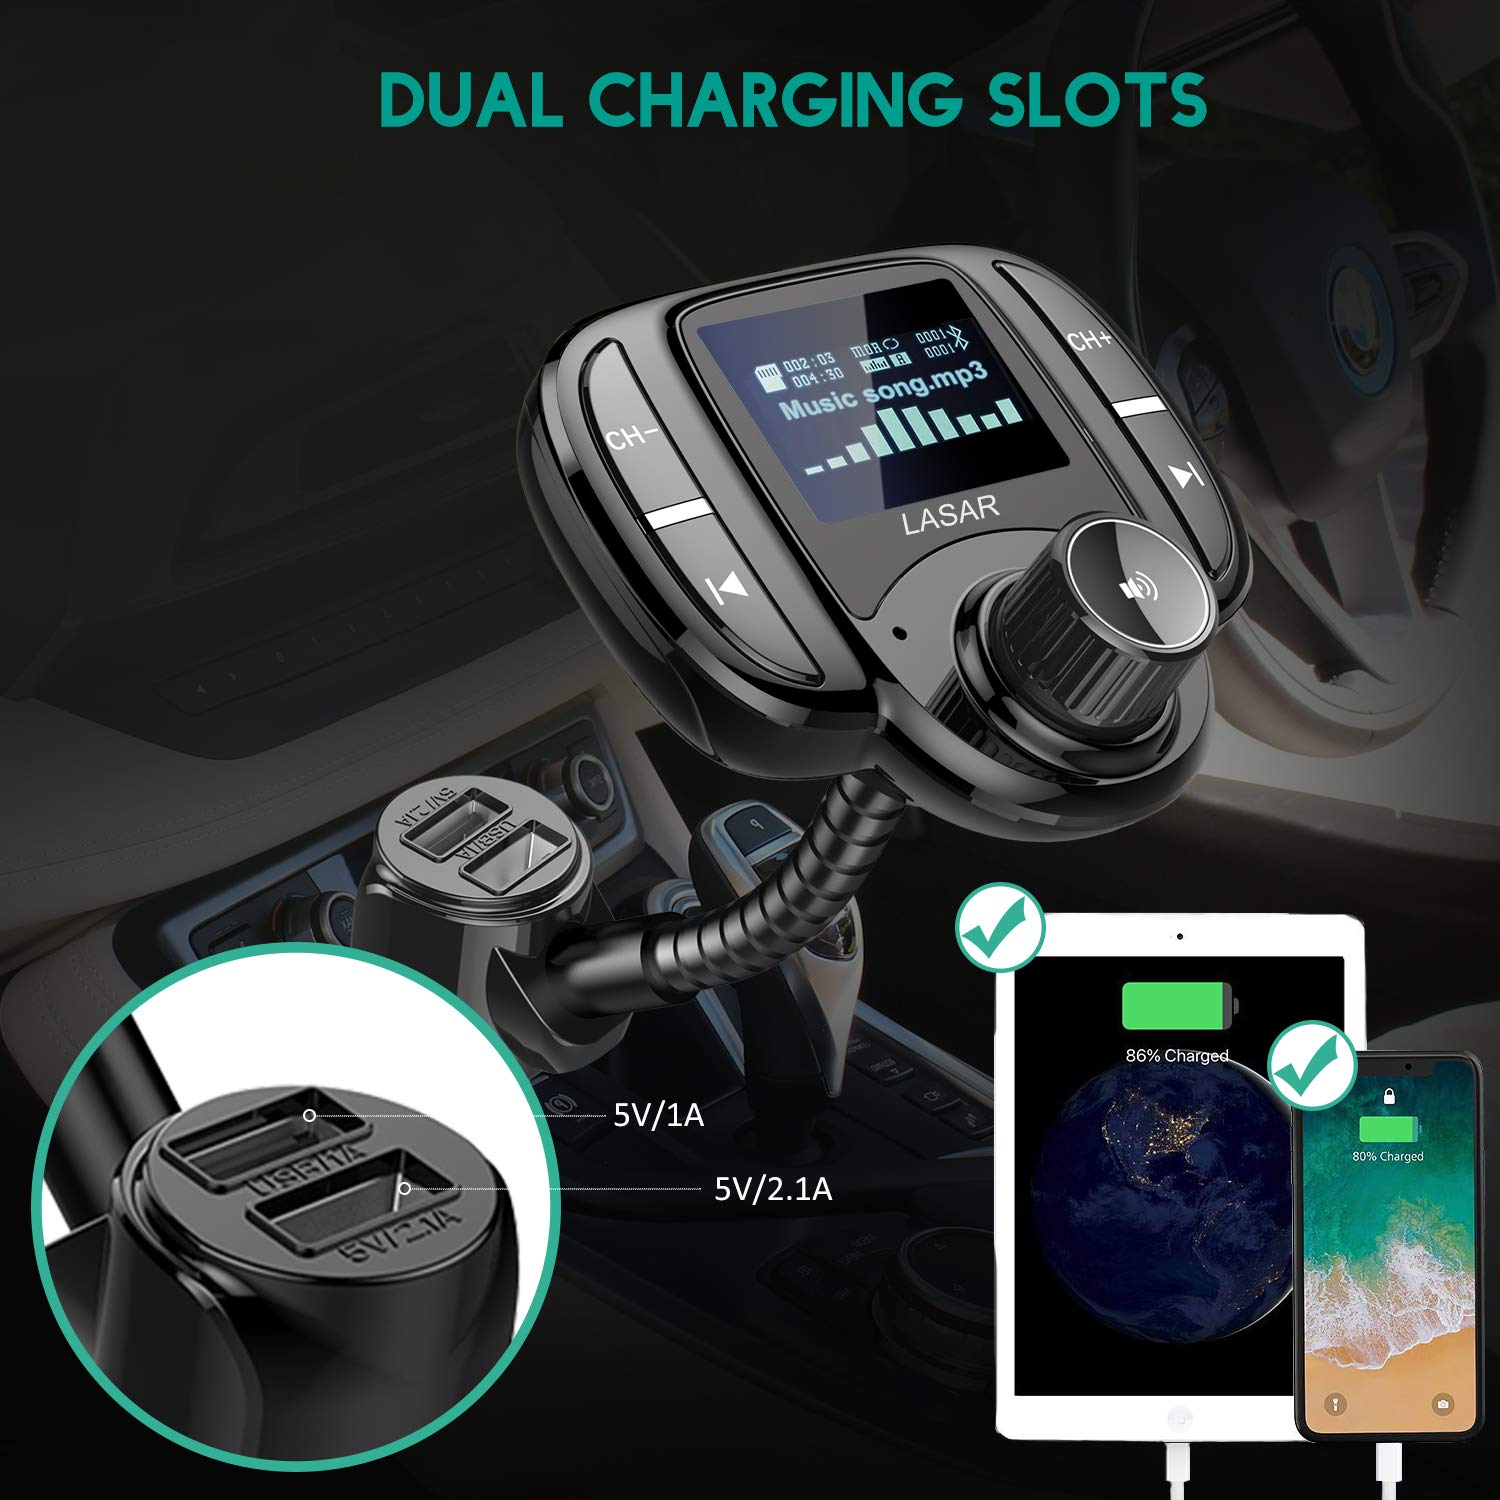 """LASAR Bluetooth FM Transmitter,Wireless Radio Adapter Hands-Free Calling Car Kit QC3.0 and Smart Dual USB Port W 1.7"""" Display, Support USB Drive,AUX Input/Output, TF Card MP3 Player by LASAR (Image #7)"""